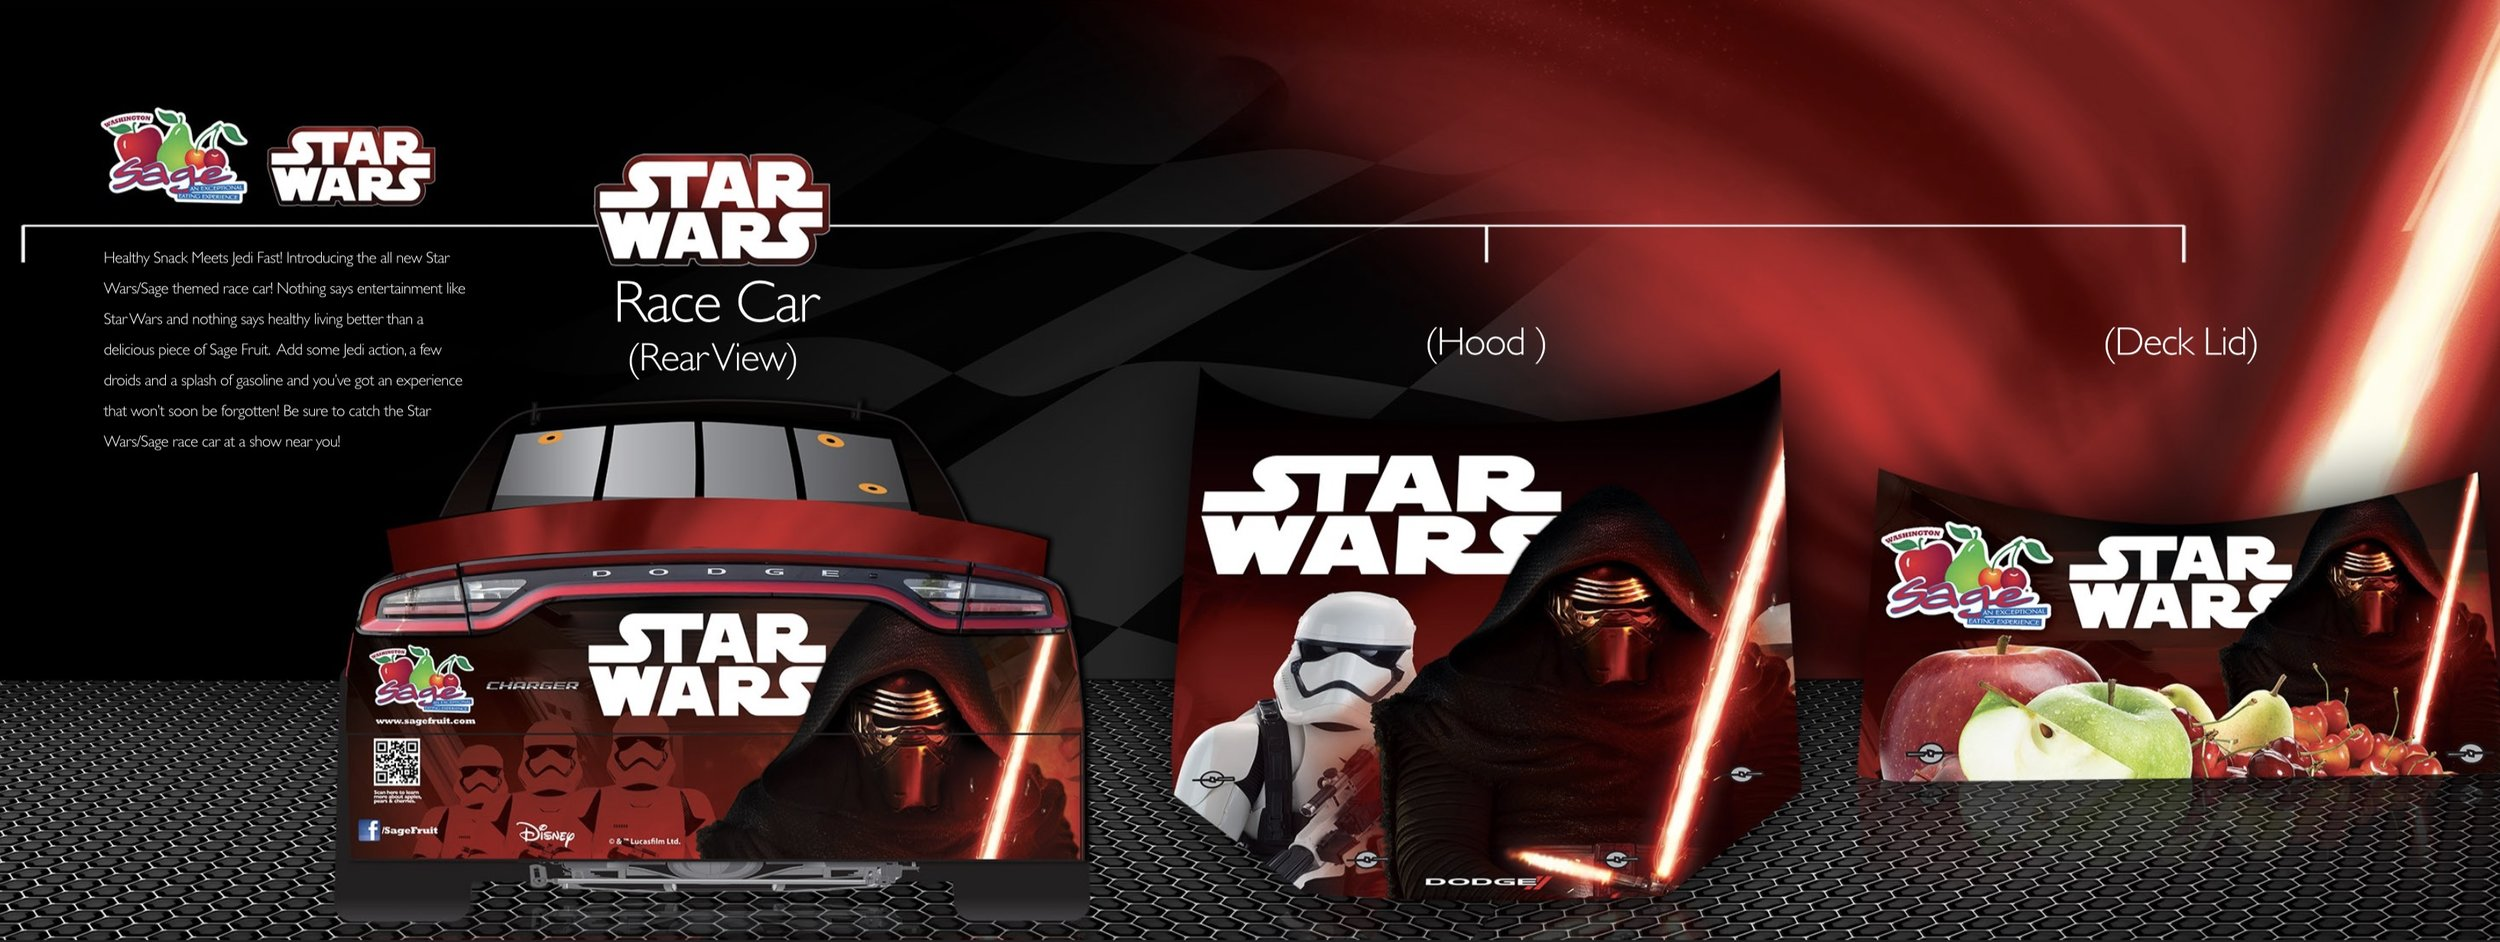 Star Wars vehicle wrap designed in collaboration with Sage Fruit and Disney.